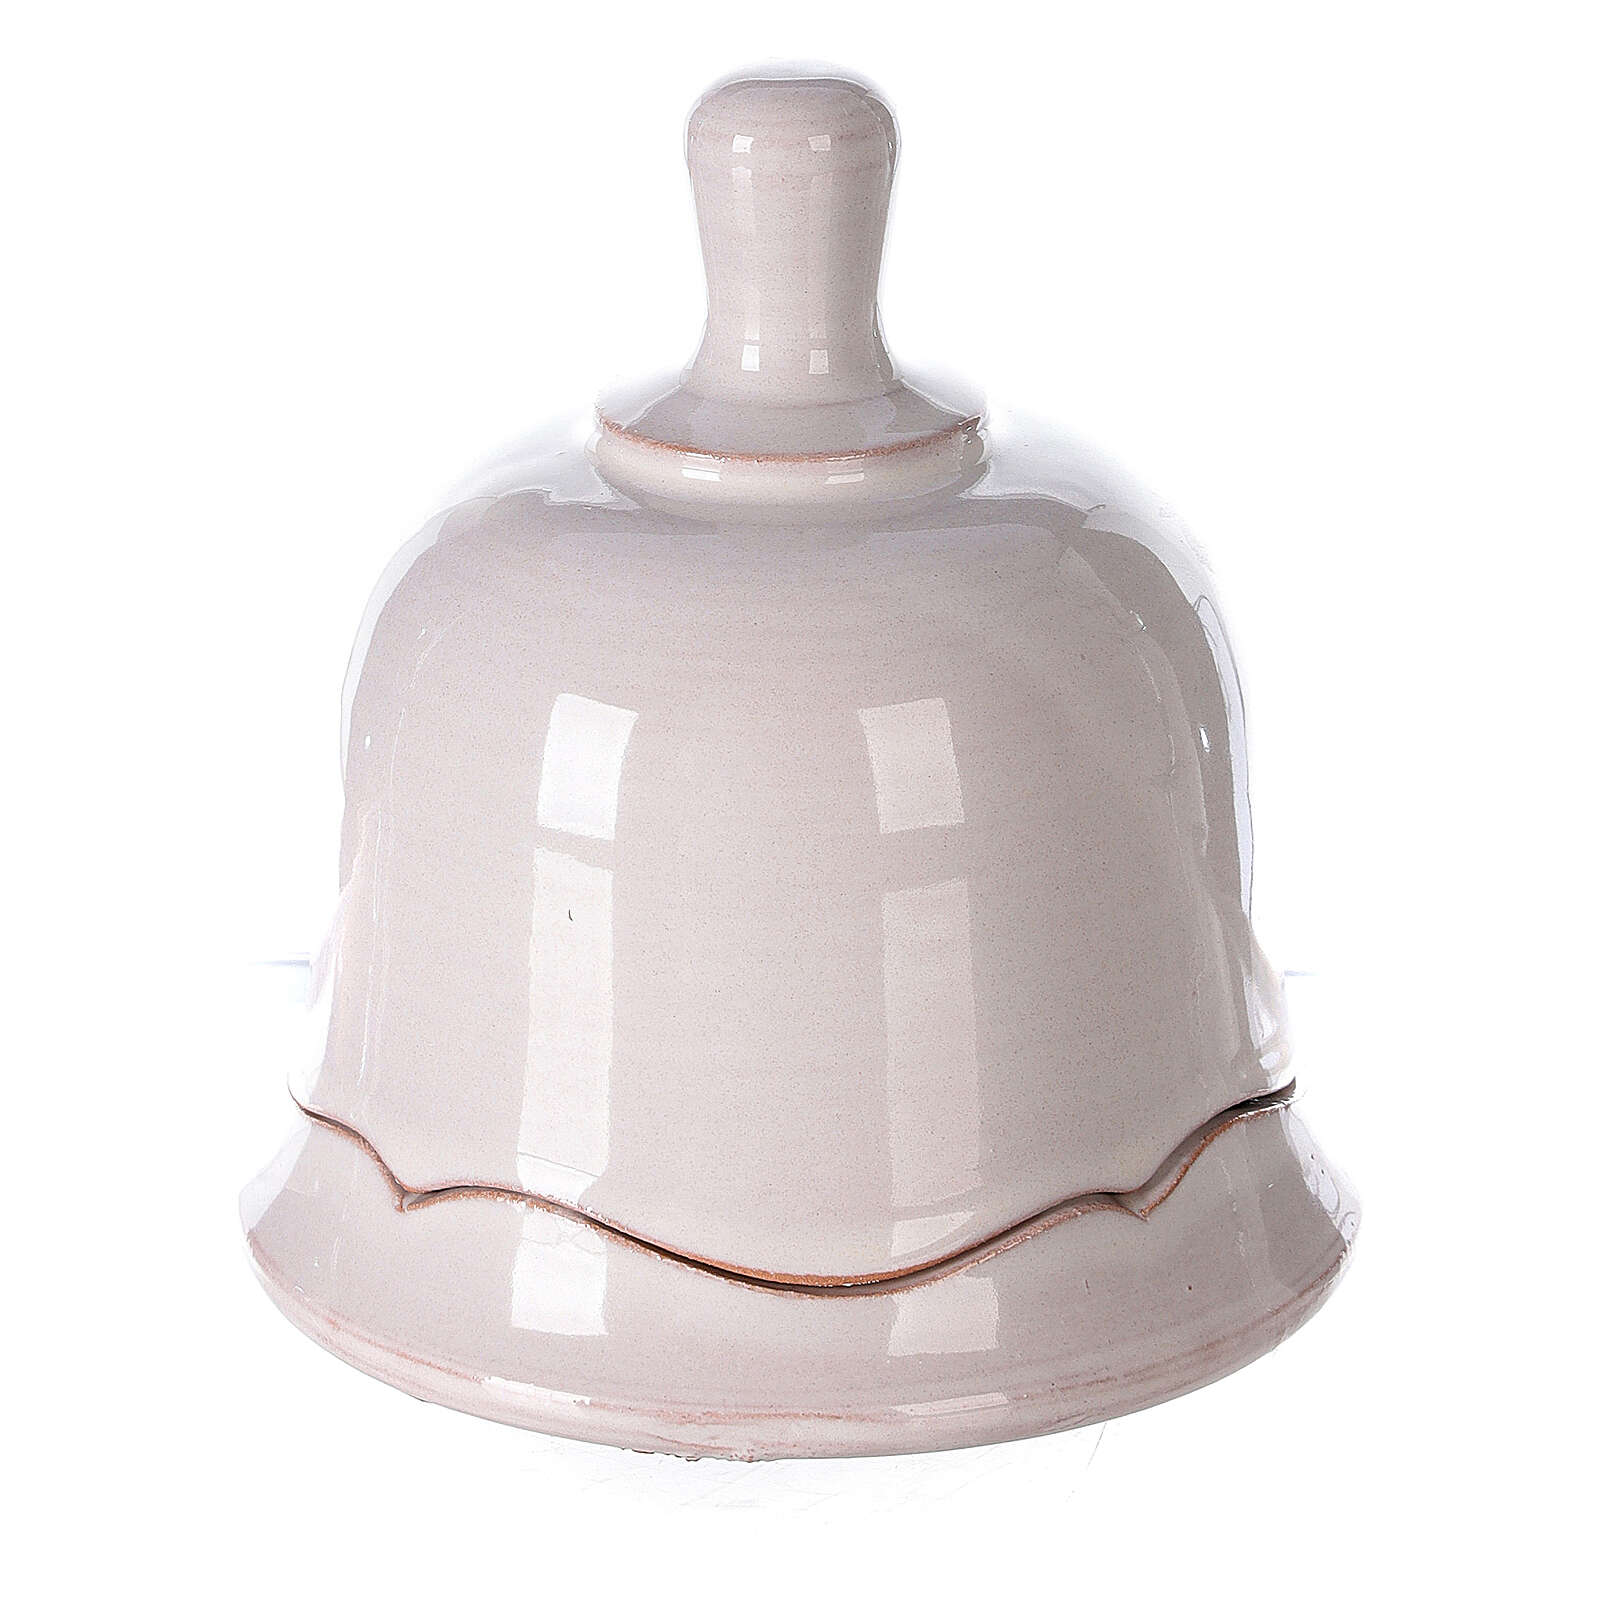 Openable bell with Nativity in white Deruta terracotta 10 cm 4